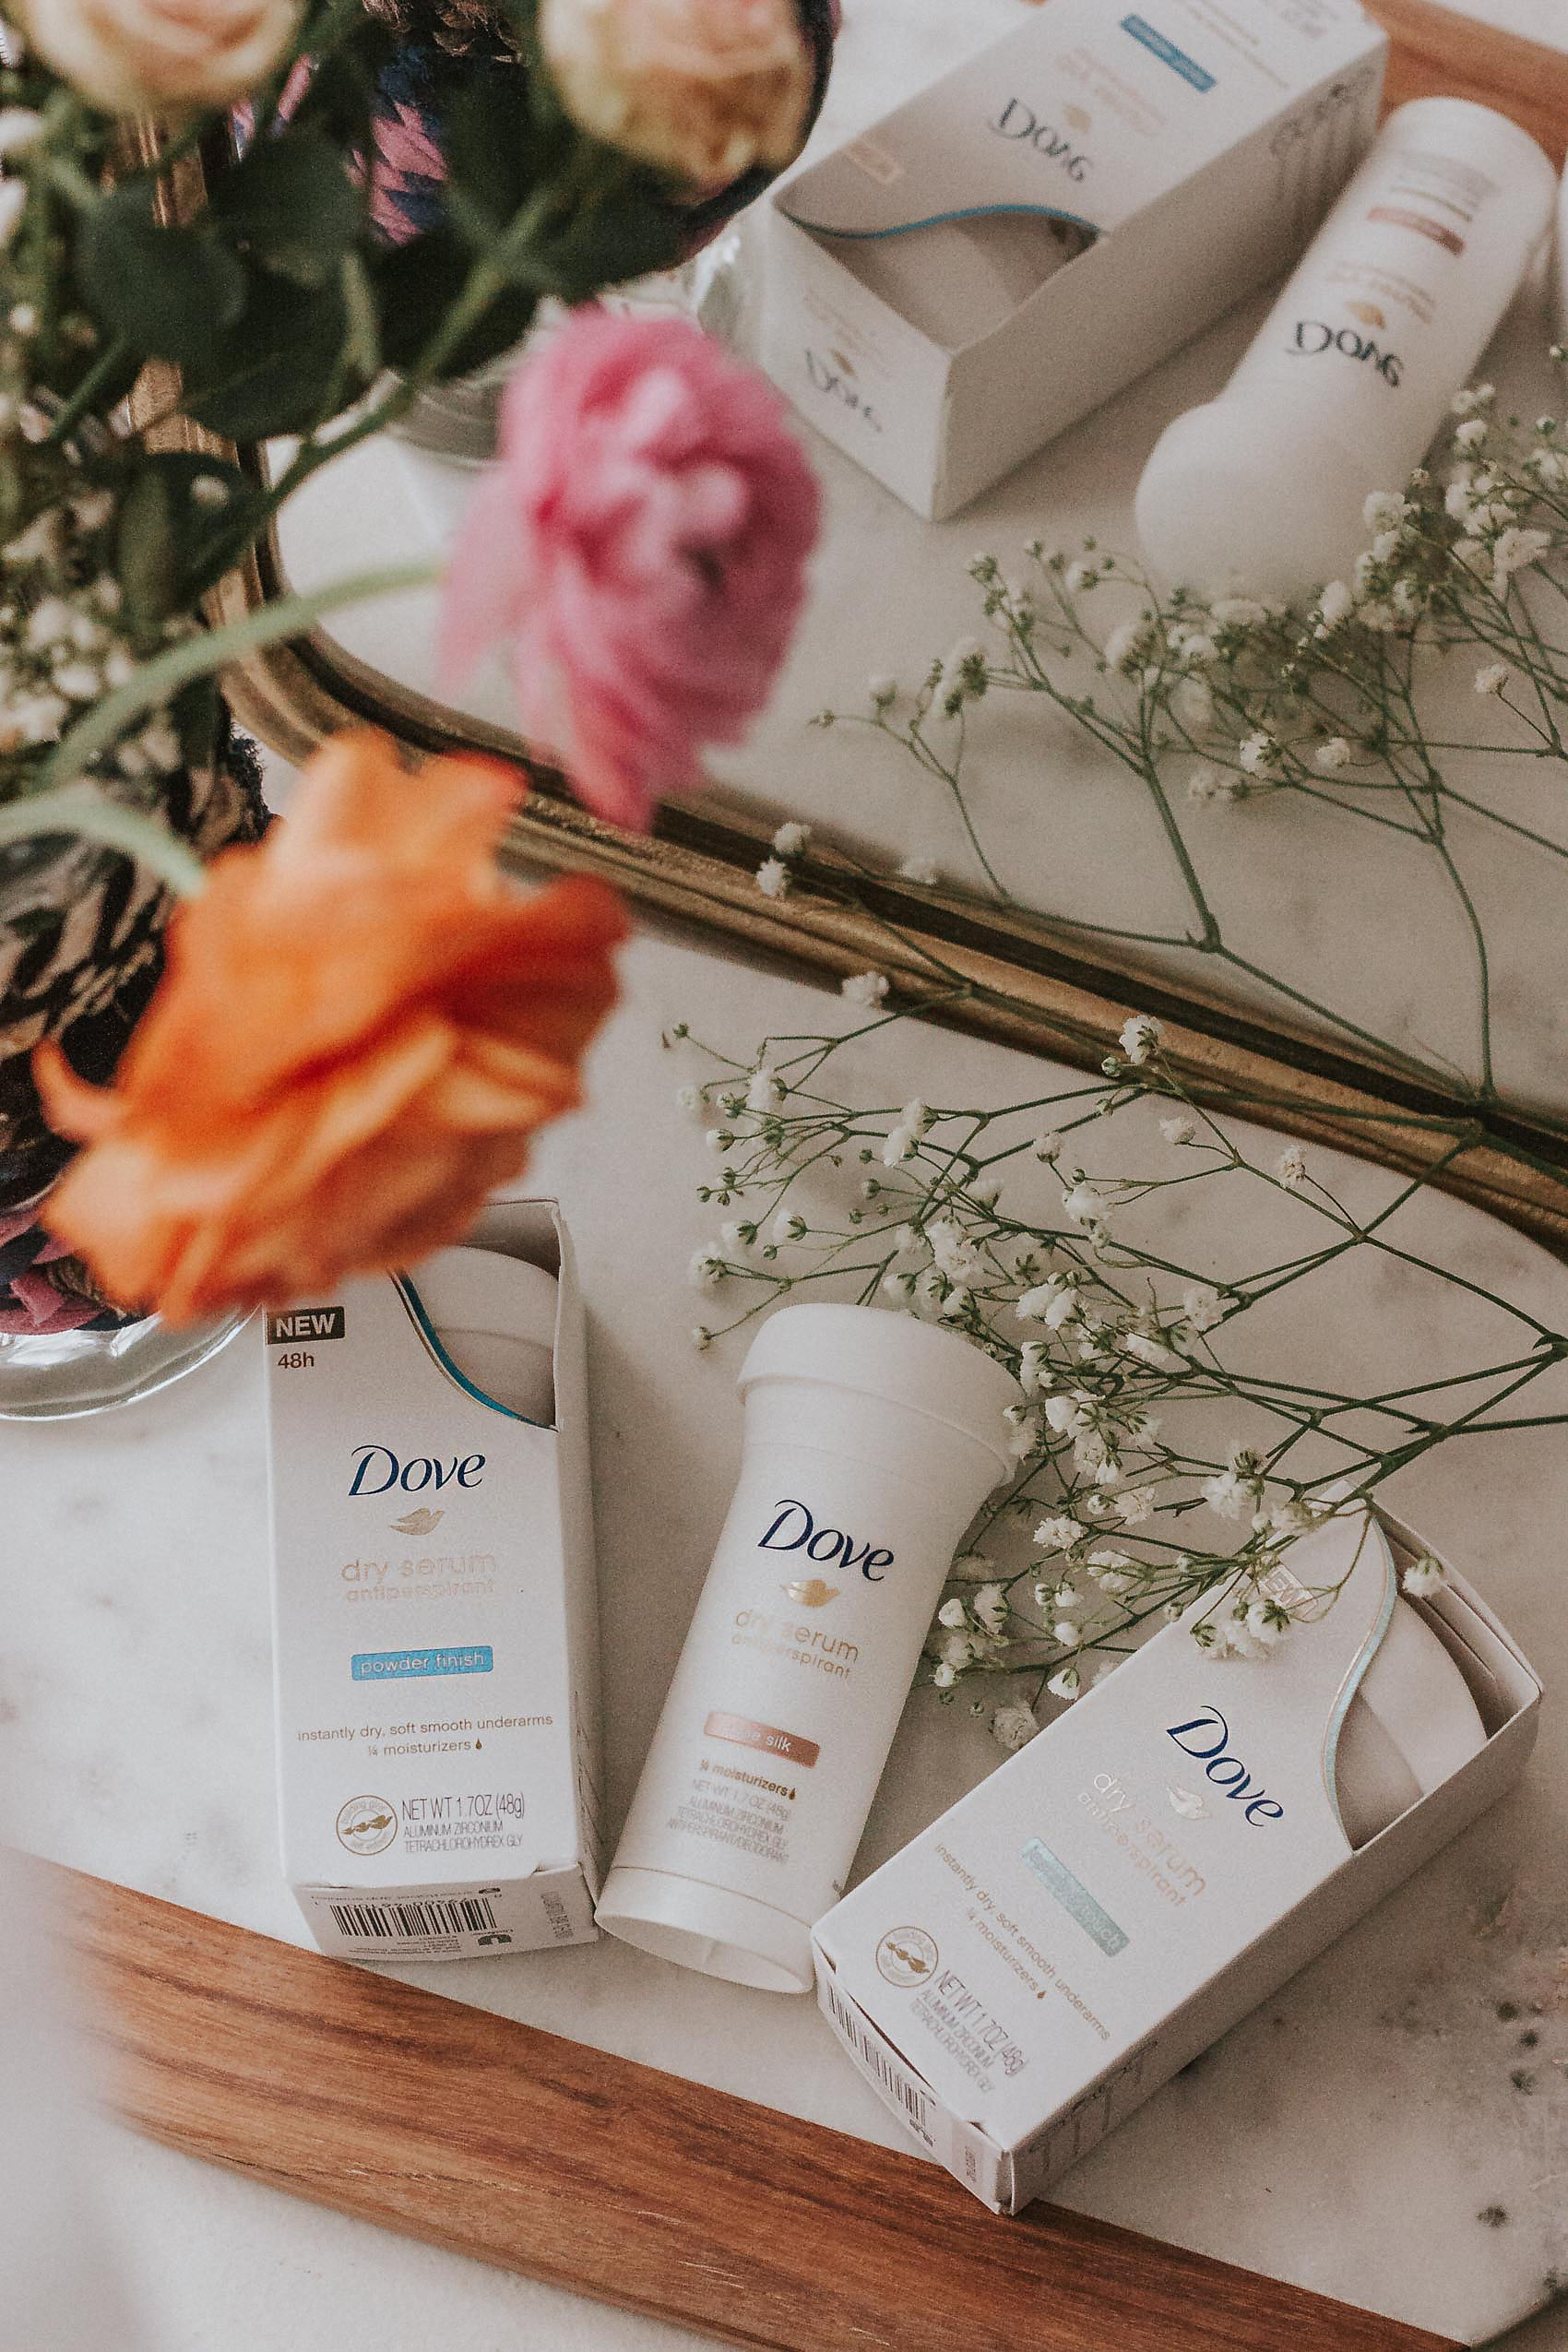 Dove Dry Serum Antiperspirant Fragrances, Rose Silk, Jasmine Touch, Powder Finish